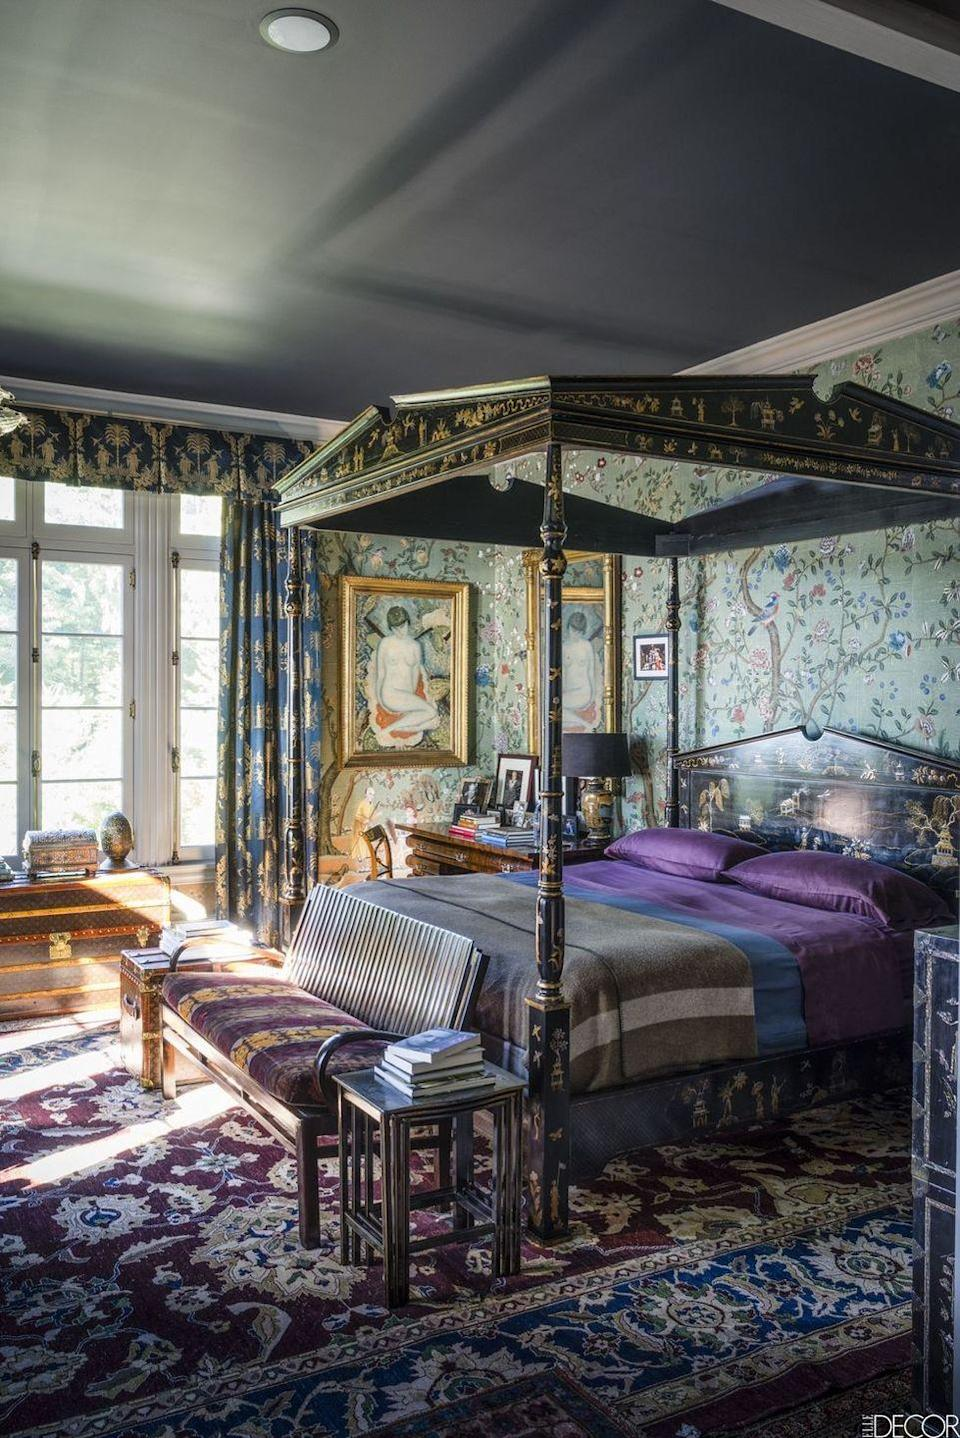 """<p>On an <a href=""""https://www.elledecor.com/design-decorate/house-interiors/a8979/ferncliffe-estate/"""" rel=""""nofollow noopener"""" target=""""_blank"""" data-ylk=""""slk:estate in the Hudson River Valley"""" class=""""link rapid-noclick-resp"""">estate in the Hudson River Valley</a>, the pattern-friendly master bedroom is outfitted with hand-painted wallpaper by de Gournay. The curtains and pelmet are of Lelievre damasks, and the rug is a Persian 20th-century design.</p><p><em>Jenny Peopy Wallpaper, from $18<br></em><a class=""""link rapid-noclick-resp"""" href=""""https://www.spoonflower.com/en/wallpaper/7195938-jenny-peony-cornflower-by-domesticate?country=us¤cy=USD&fabric=wallpaper_smooth&measurement_system=imperial&size=WALLPAPER_IMPERIAL_ROLL_2_x_3&gclid=CjwKCAiArIH_BRB2EiwALfbH1K39qZlspGSzqiXZumPhZnnecu6XnMNOryG29H1bJtXgljNOX4KzjxoC_nAQAvD_BwE"""" rel=""""nofollow noopener"""" target=""""_blank"""" data-ylk=""""slk:Shop the Look"""">Shop the Look</a></p>"""